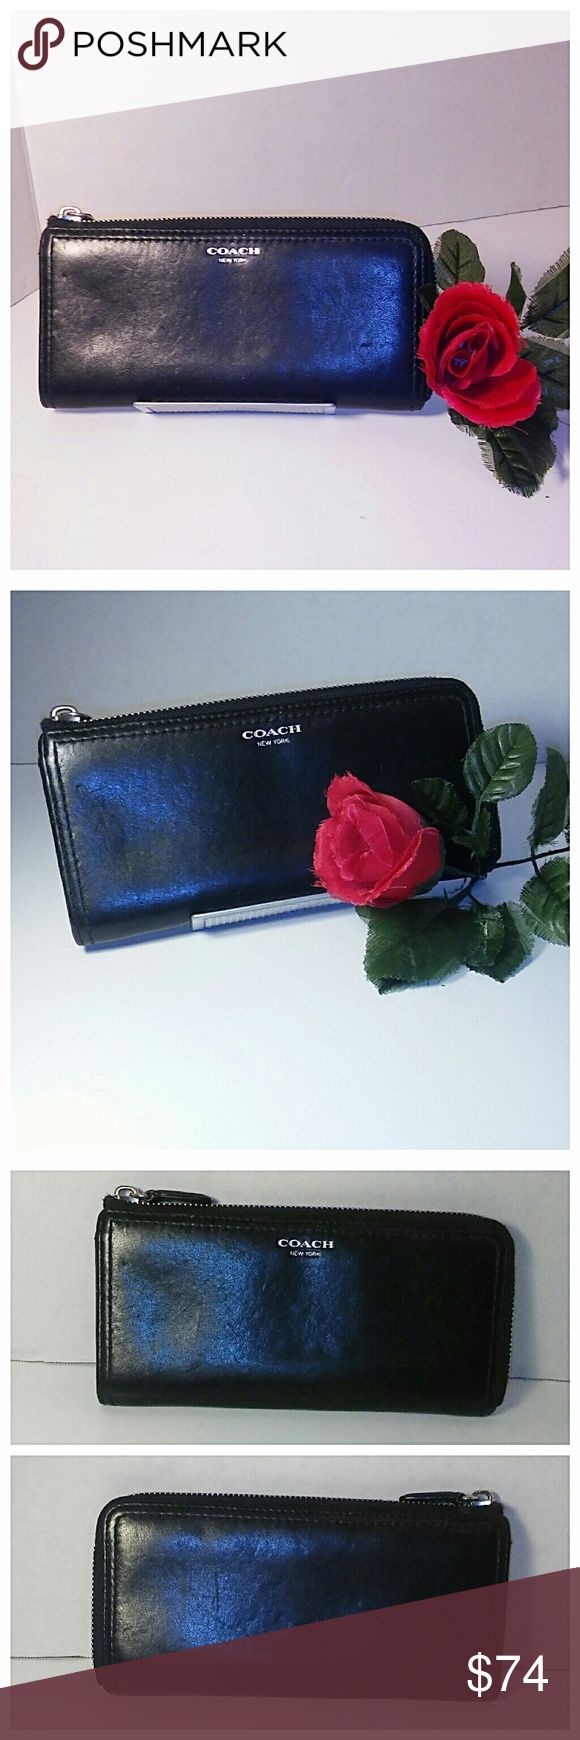 """Coach Legacy Slim Zip Wallet Authentic coach wallet in great shape. There's plenty of slots to keep you organized. Both the interior and exterior zippers run very smoothly. Freshly polished just for you. Measures 8"""" x 4"""".  Reasonable offers accepted  Coach Bags Wallets"""